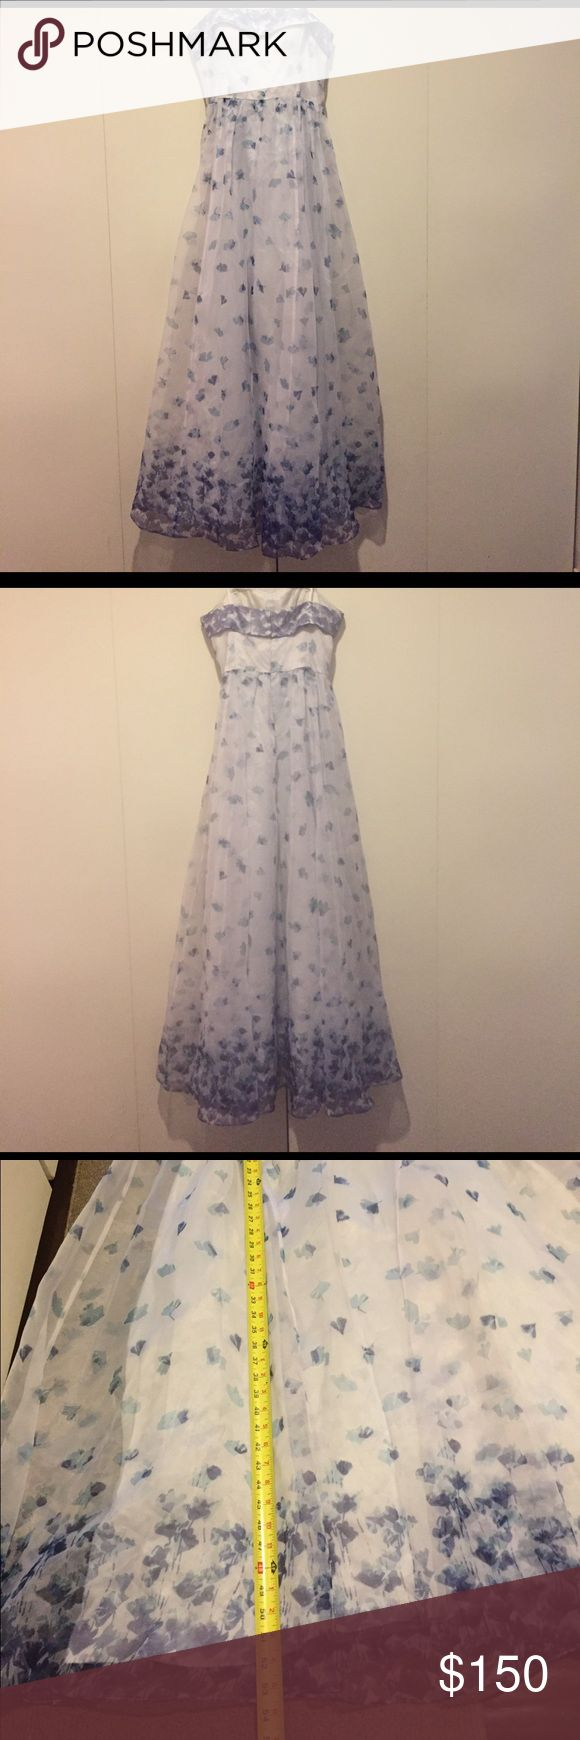 Adrianna Papell Strapless Organza Dress Size 14 Adrianna Papell Strapless Organza Long Dress Size 14 - purple floral, new with tags, never worn. See pictures for measurements, reasonable offers accepted 😊 Adrianna Papell Dresses Strapless